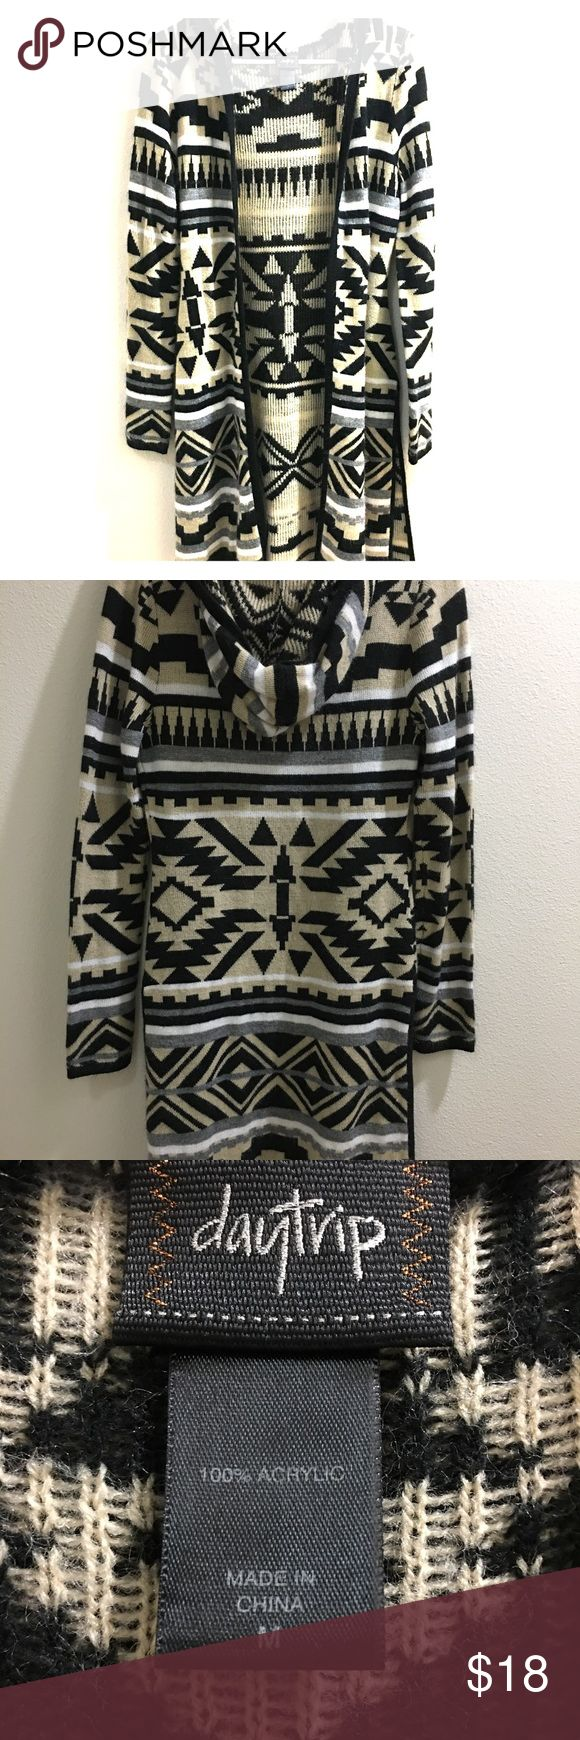 Daytrip cardigan/sweater long sleeve Aztec top Fuzzy material, has hood, about knee length (I'm 5'3), size medium sweater. Bottom has slits on both left and right sides. Very soft/warm material. Only worn a couple of times, no damage. Daytrip Sweaters Cardigans